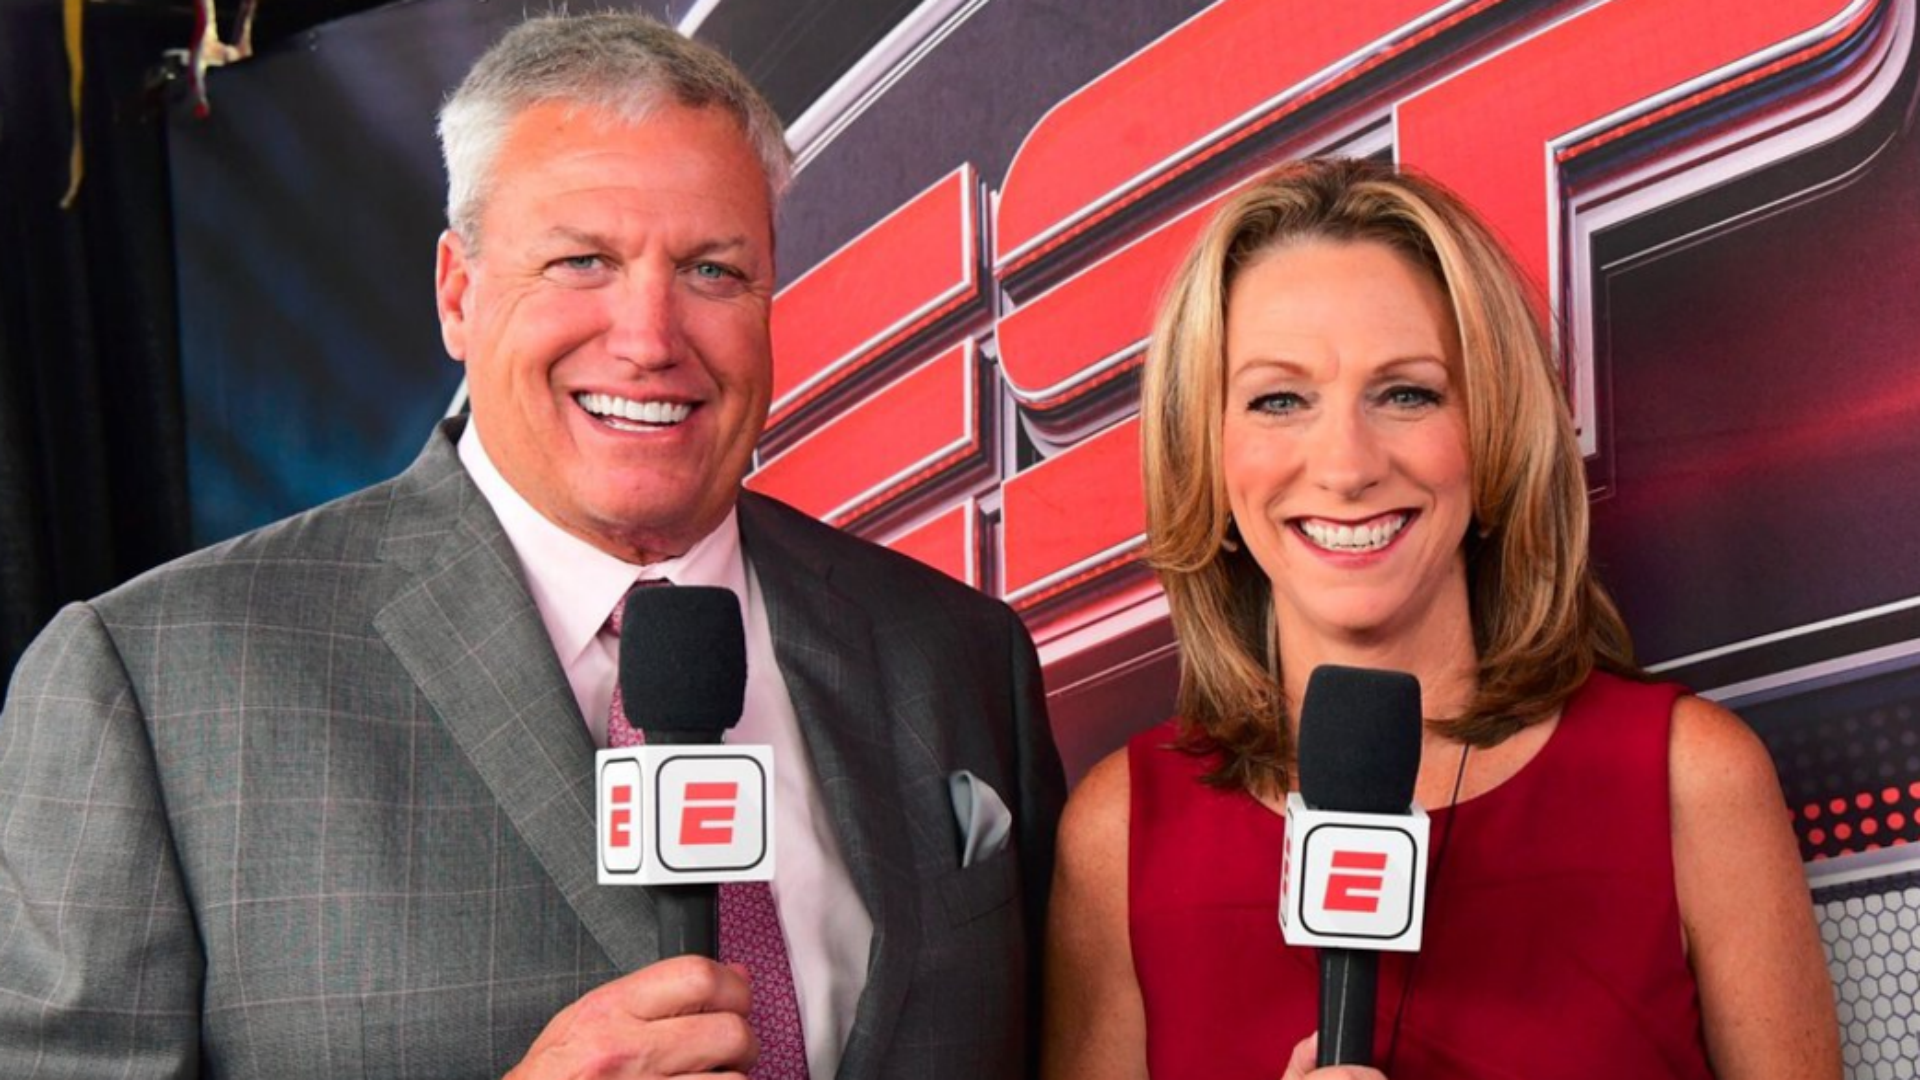 Beth Mowins becomes the first woman to call an NFL game in 30 years |  Sporting News Canada